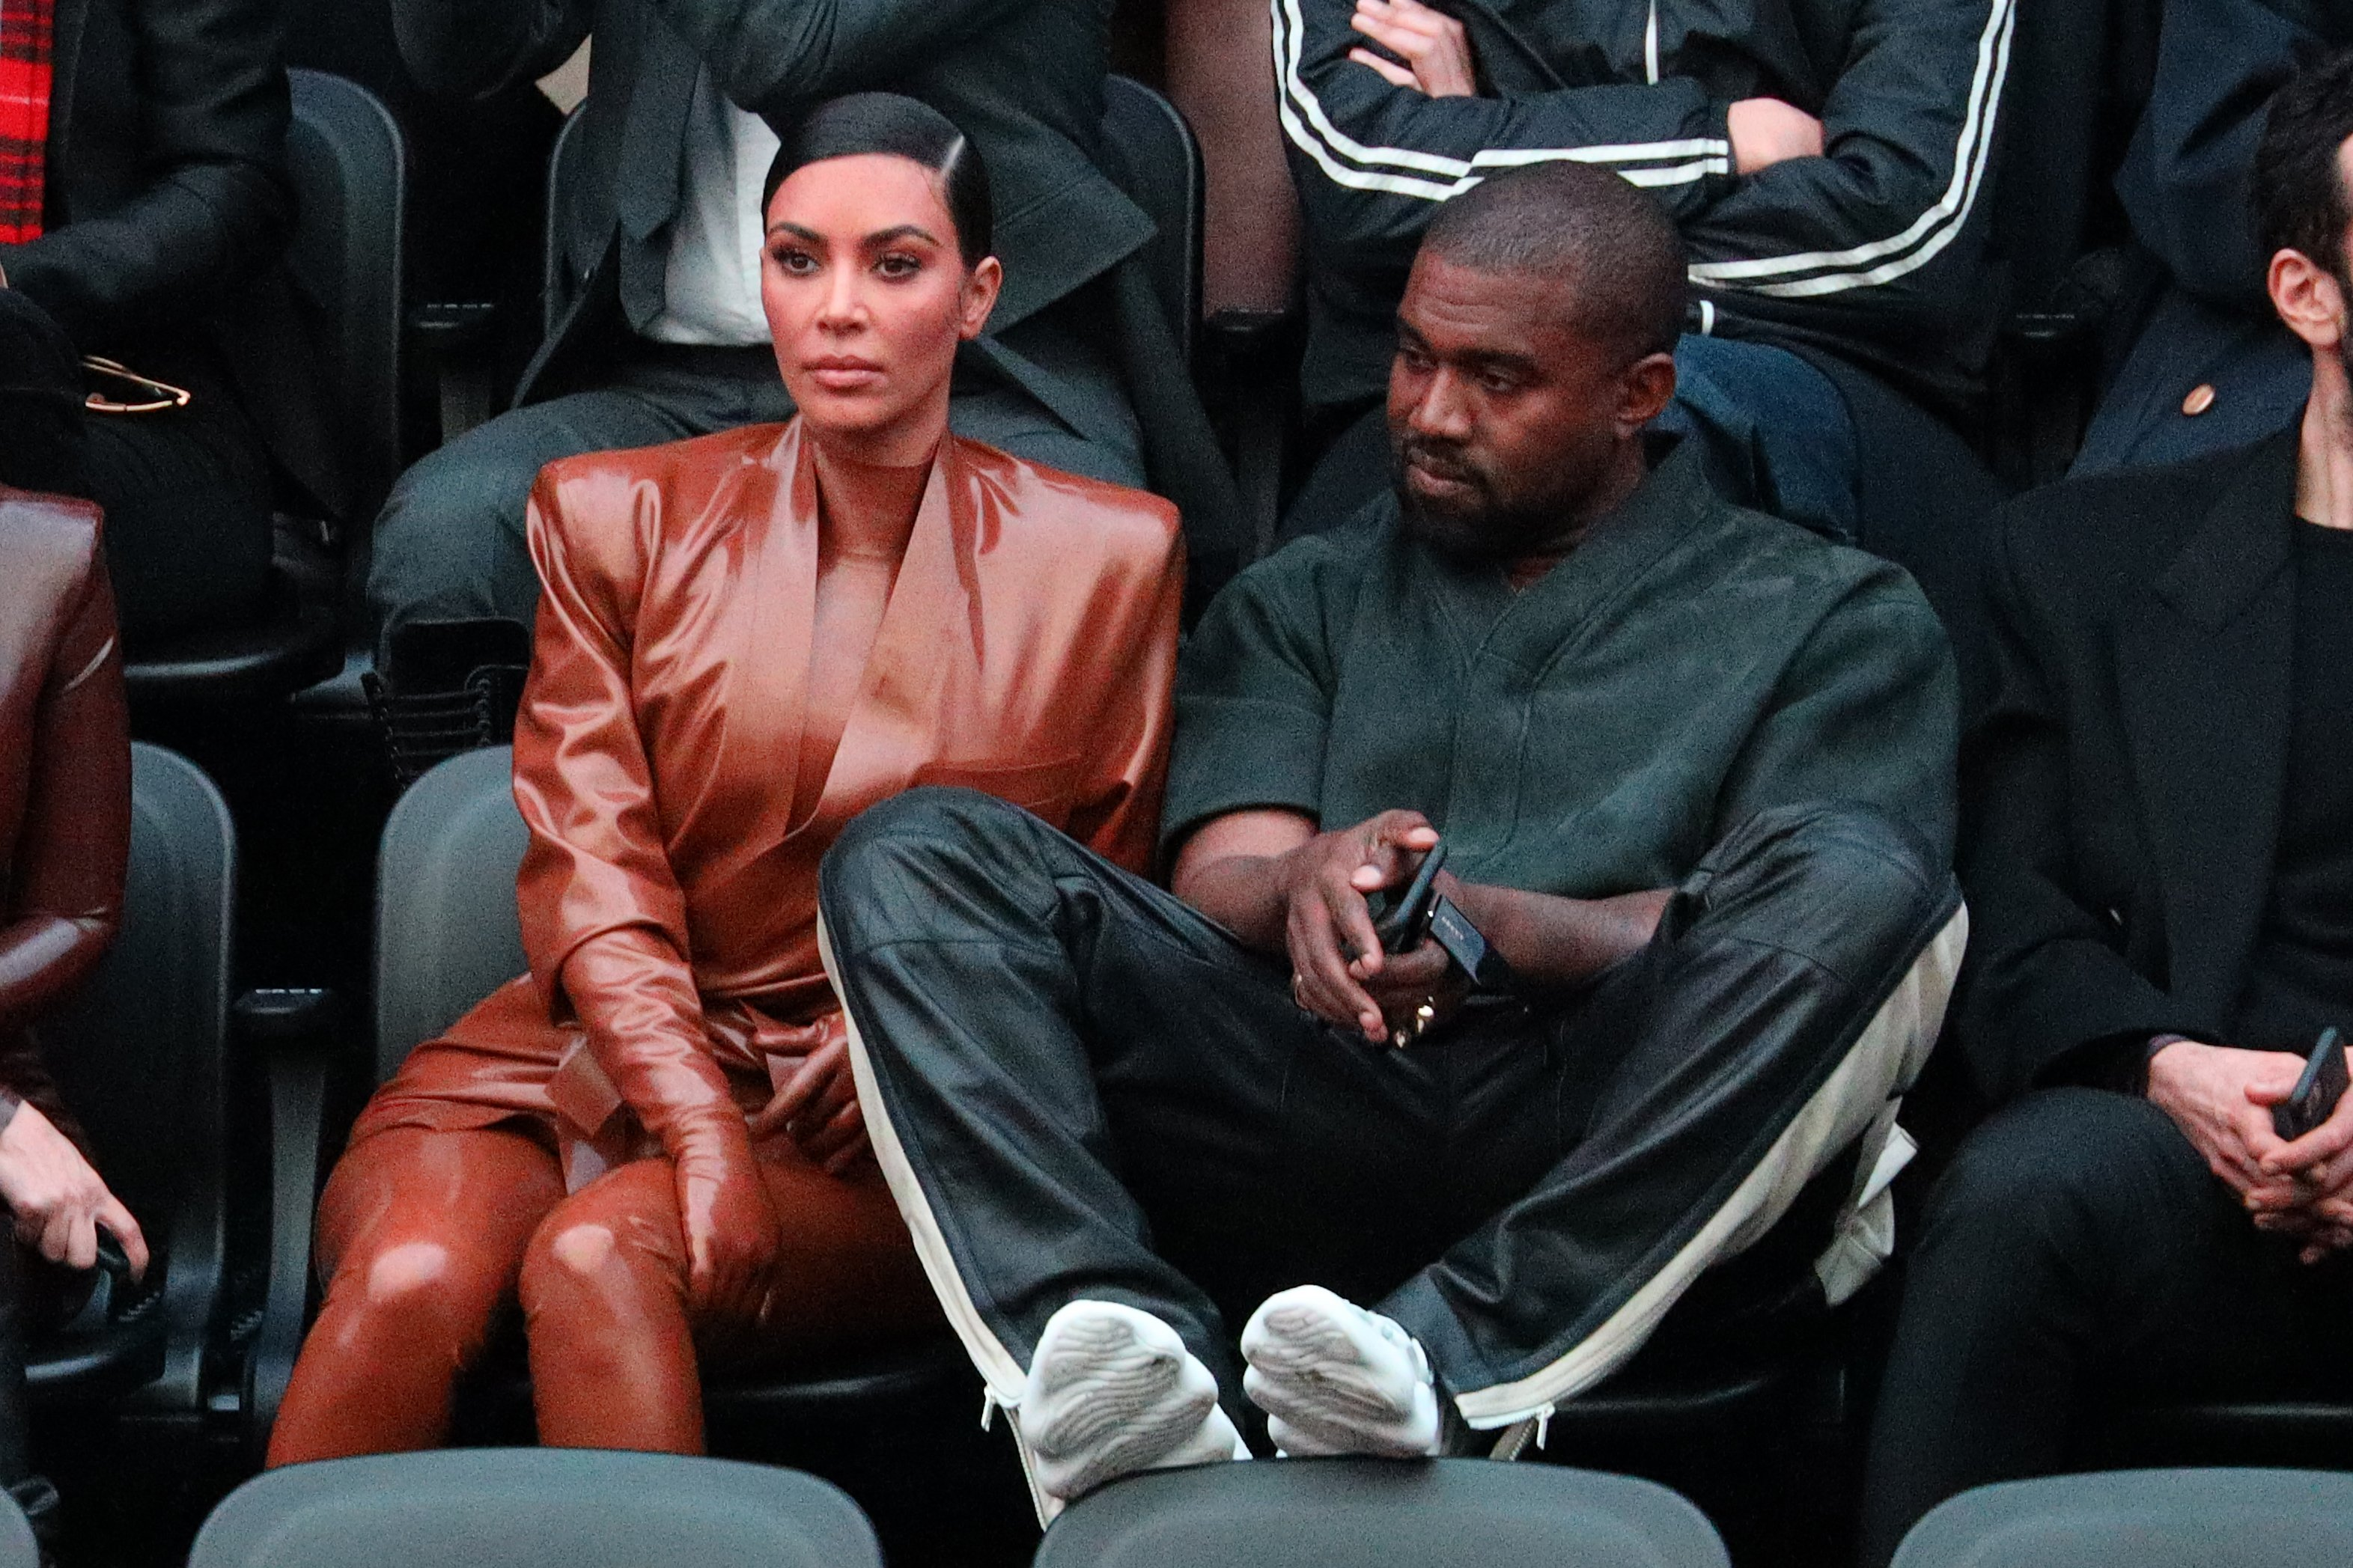 Kim Kardashian and Kanye West attend the Paris Fashion Week Womenswear Fall/Winter 2020/2021 on March 01, 2020, in Paris, France. | Source: Getty Images.